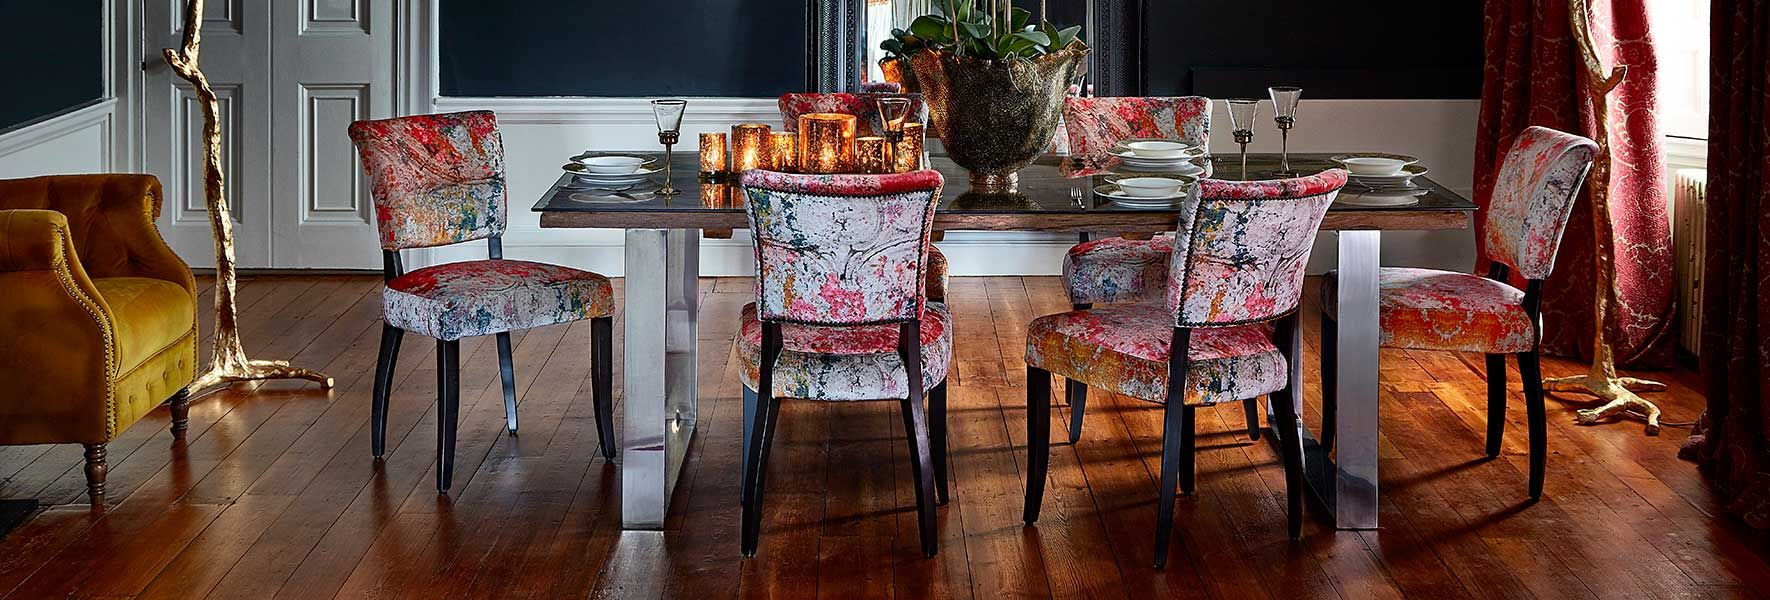 Pleasant Timothy Oulton Mimi Velvet Faded And Degraded Dining Chair Gmtry Best Dining Table And Chair Ideas Images Gmtryco